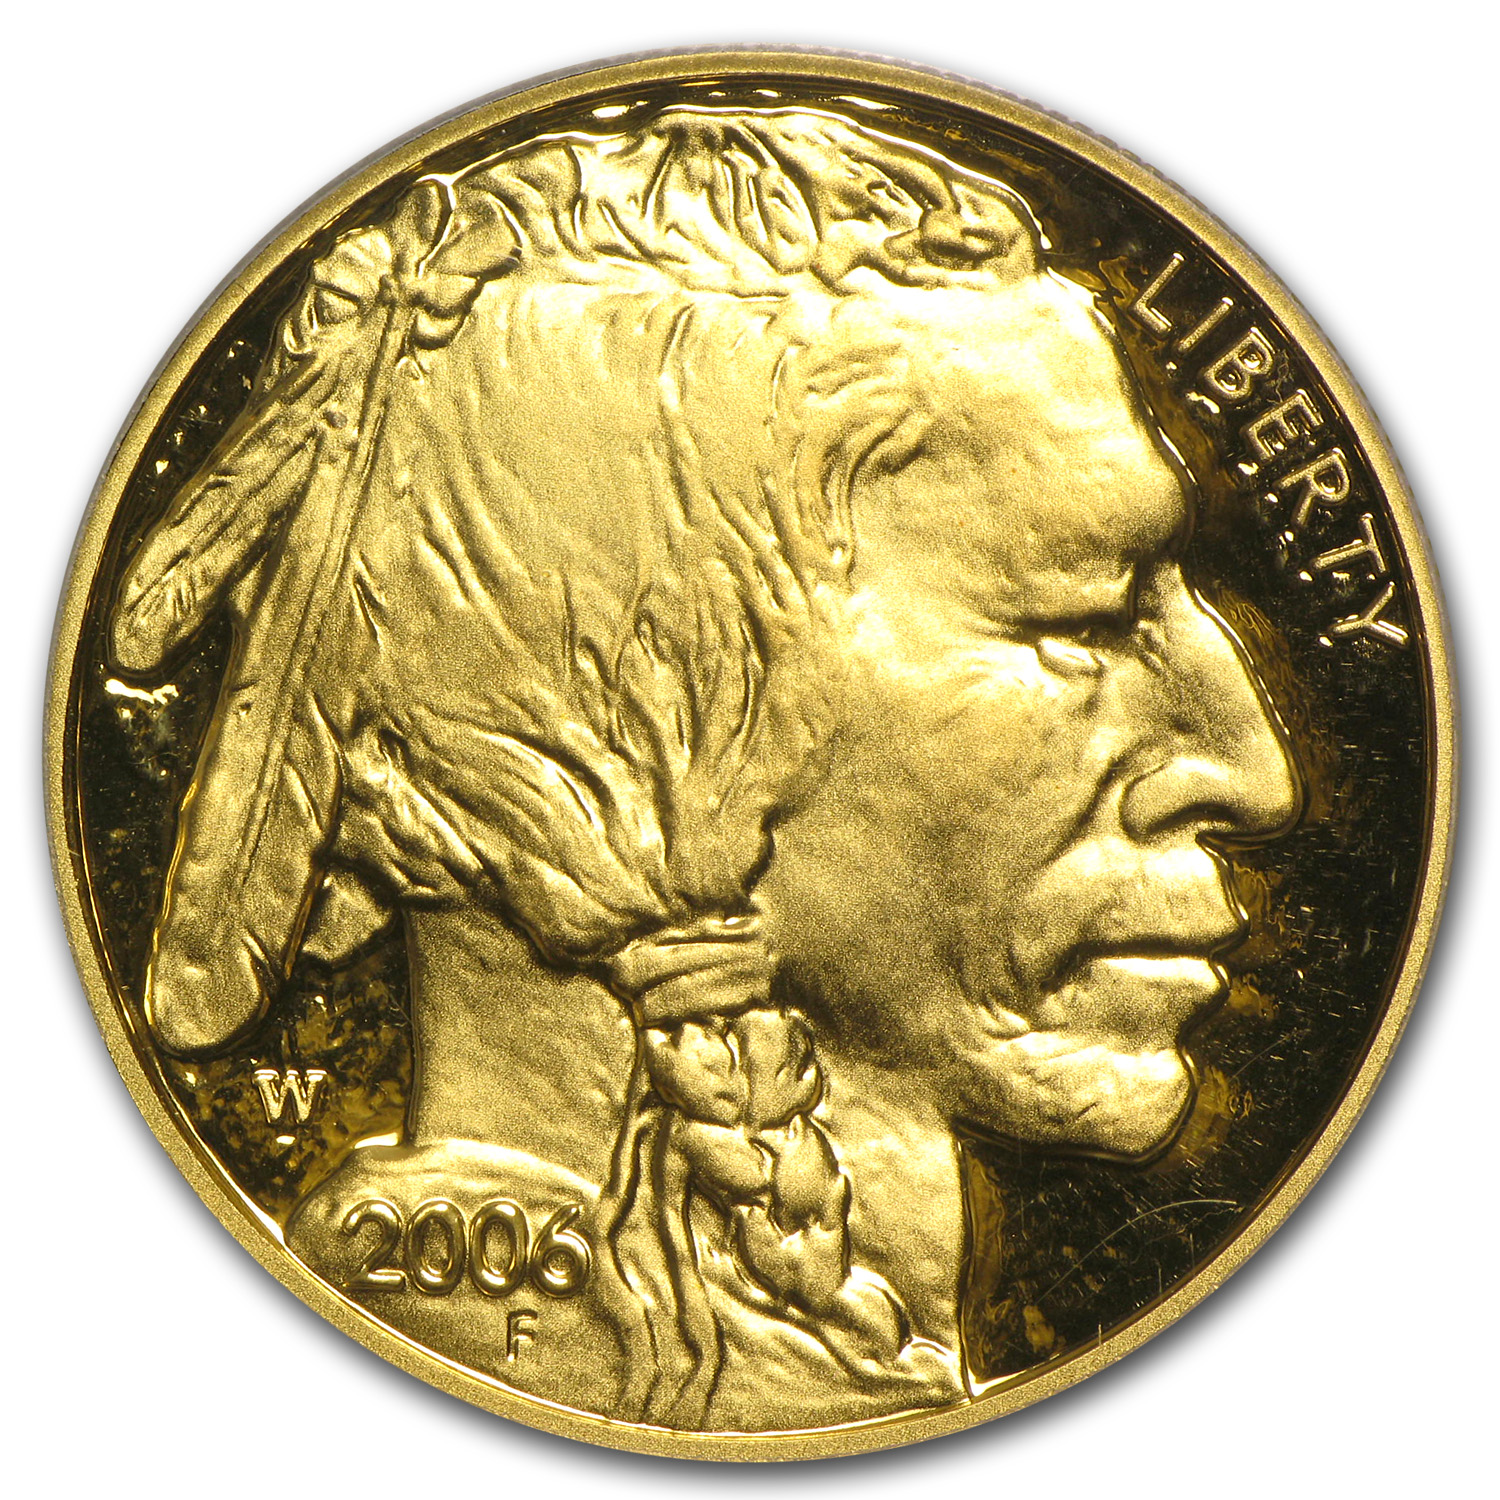 2006-W 1 oz Proof Gold Buffalo PR-70 PCGS